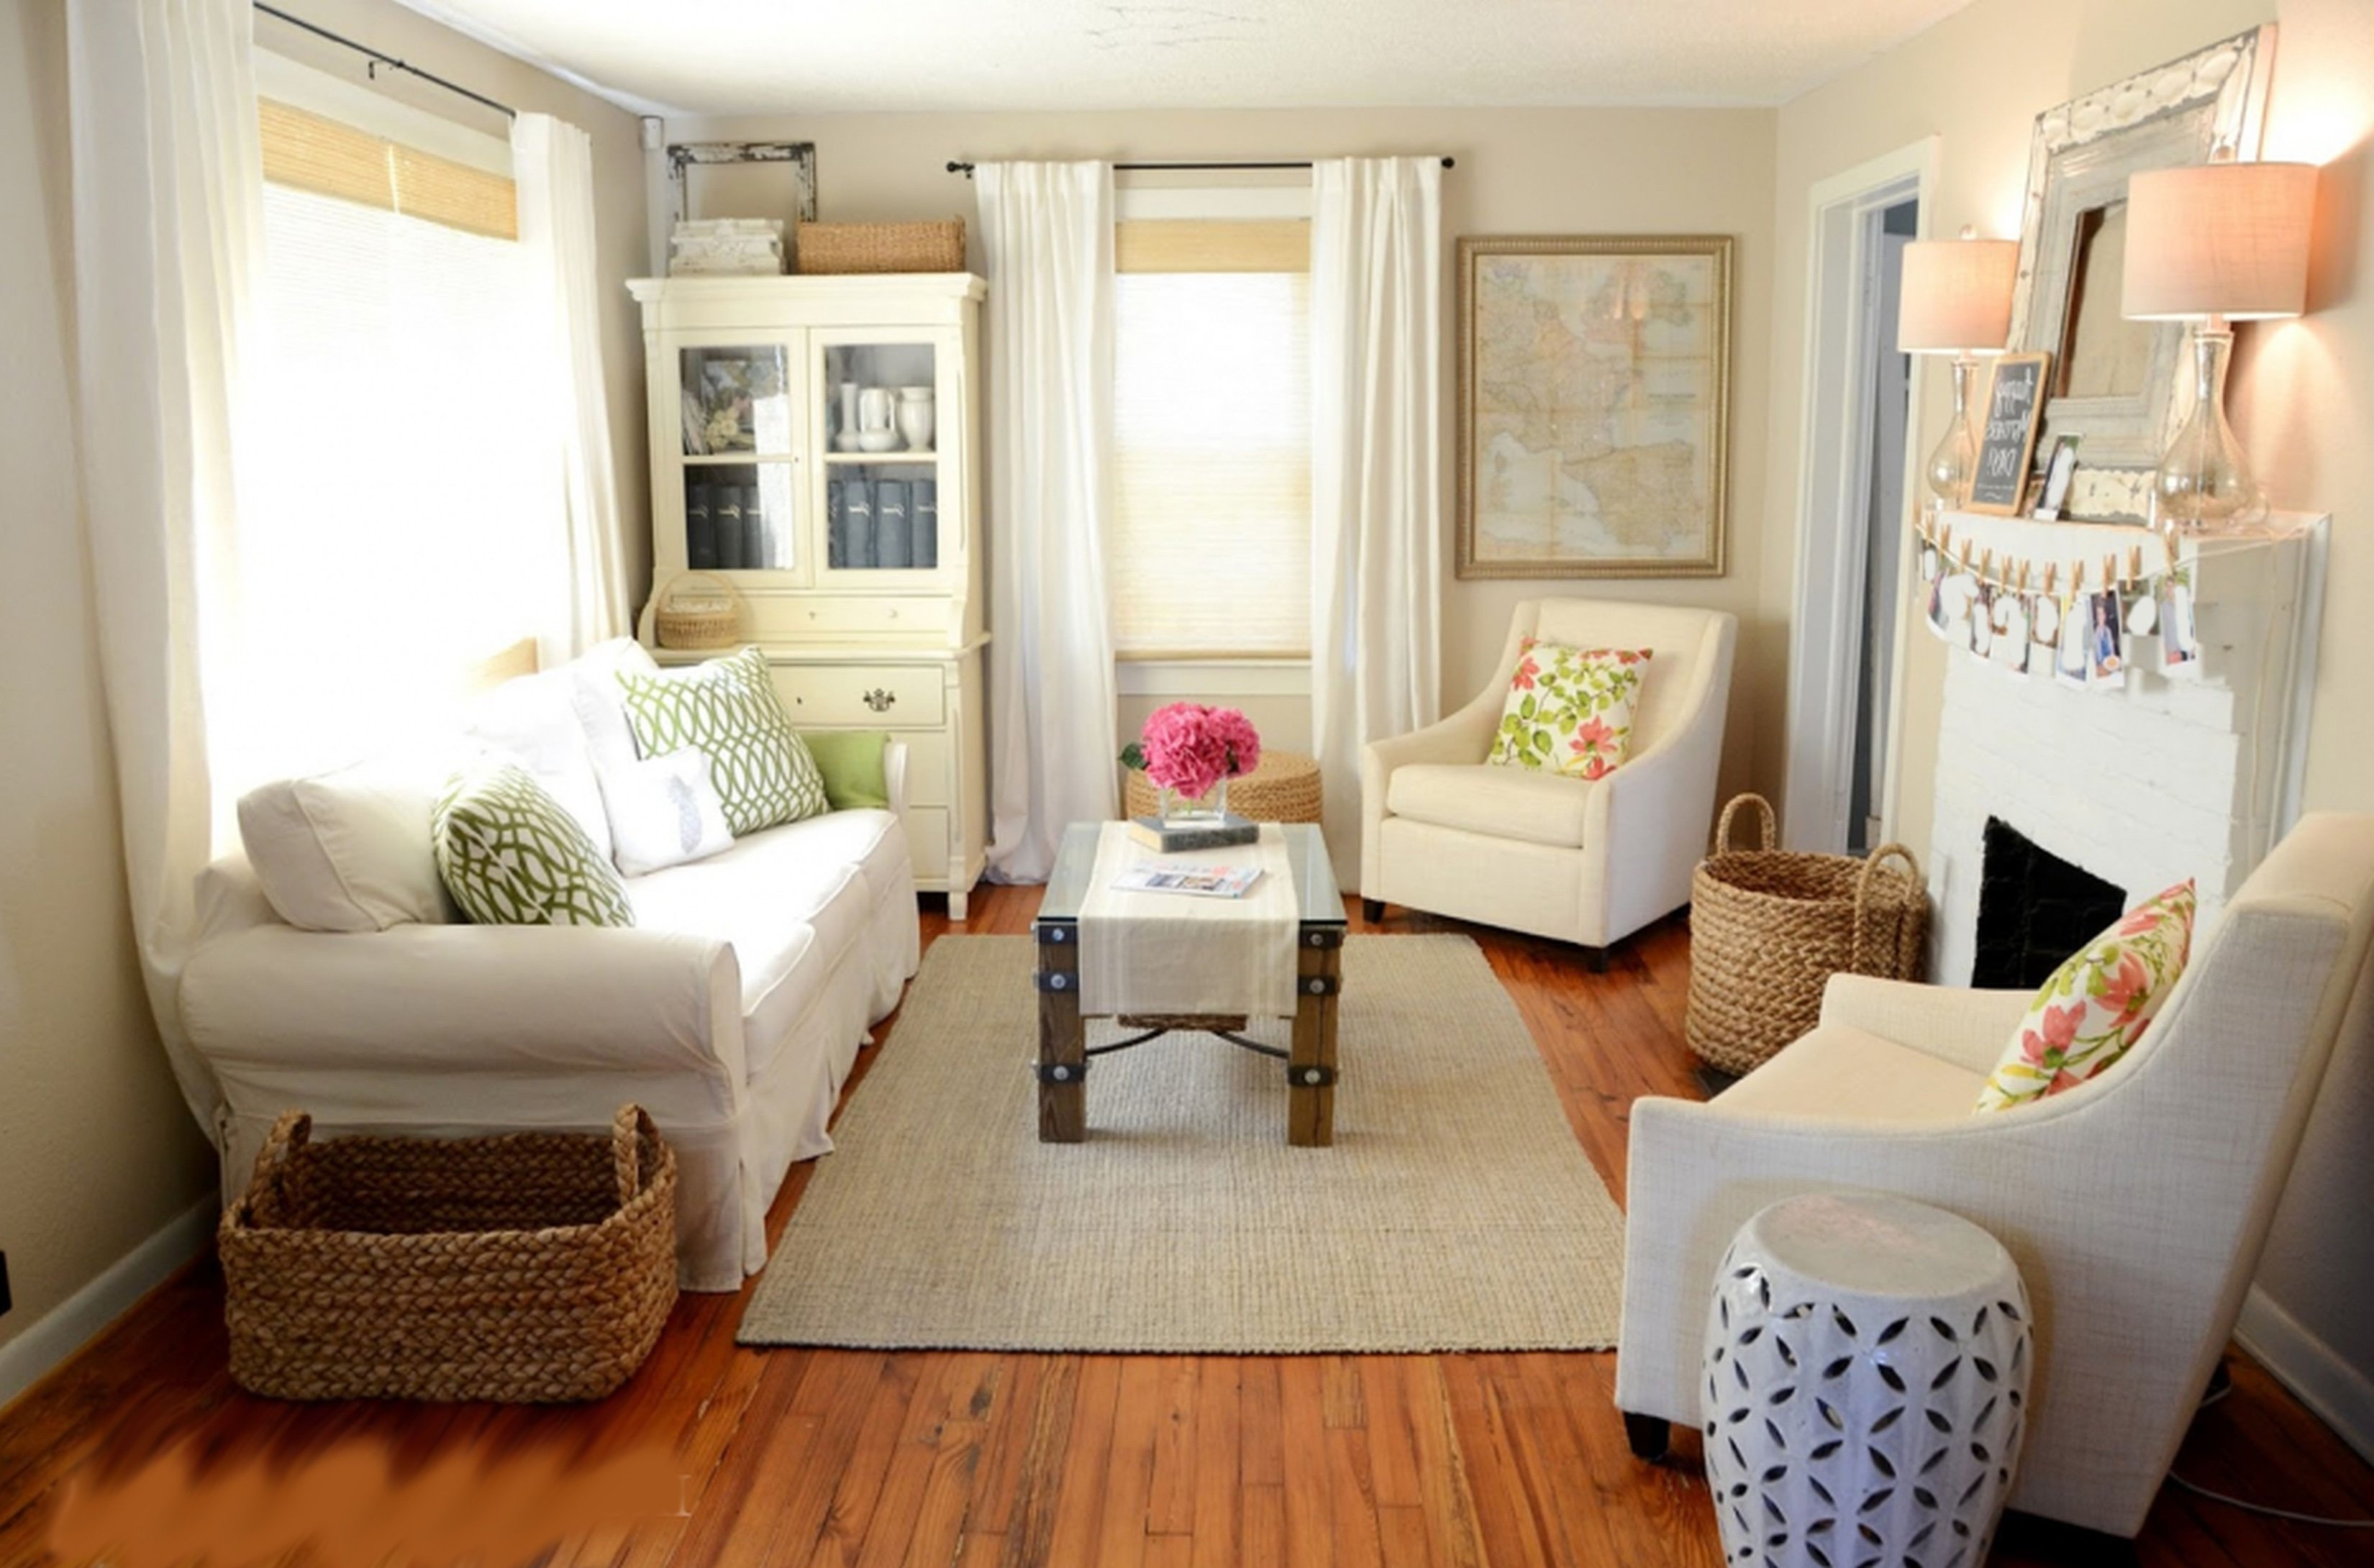 10 Unique Small Space Living Room Ideas small space living room ideas design for spaces rooms decorating new 2